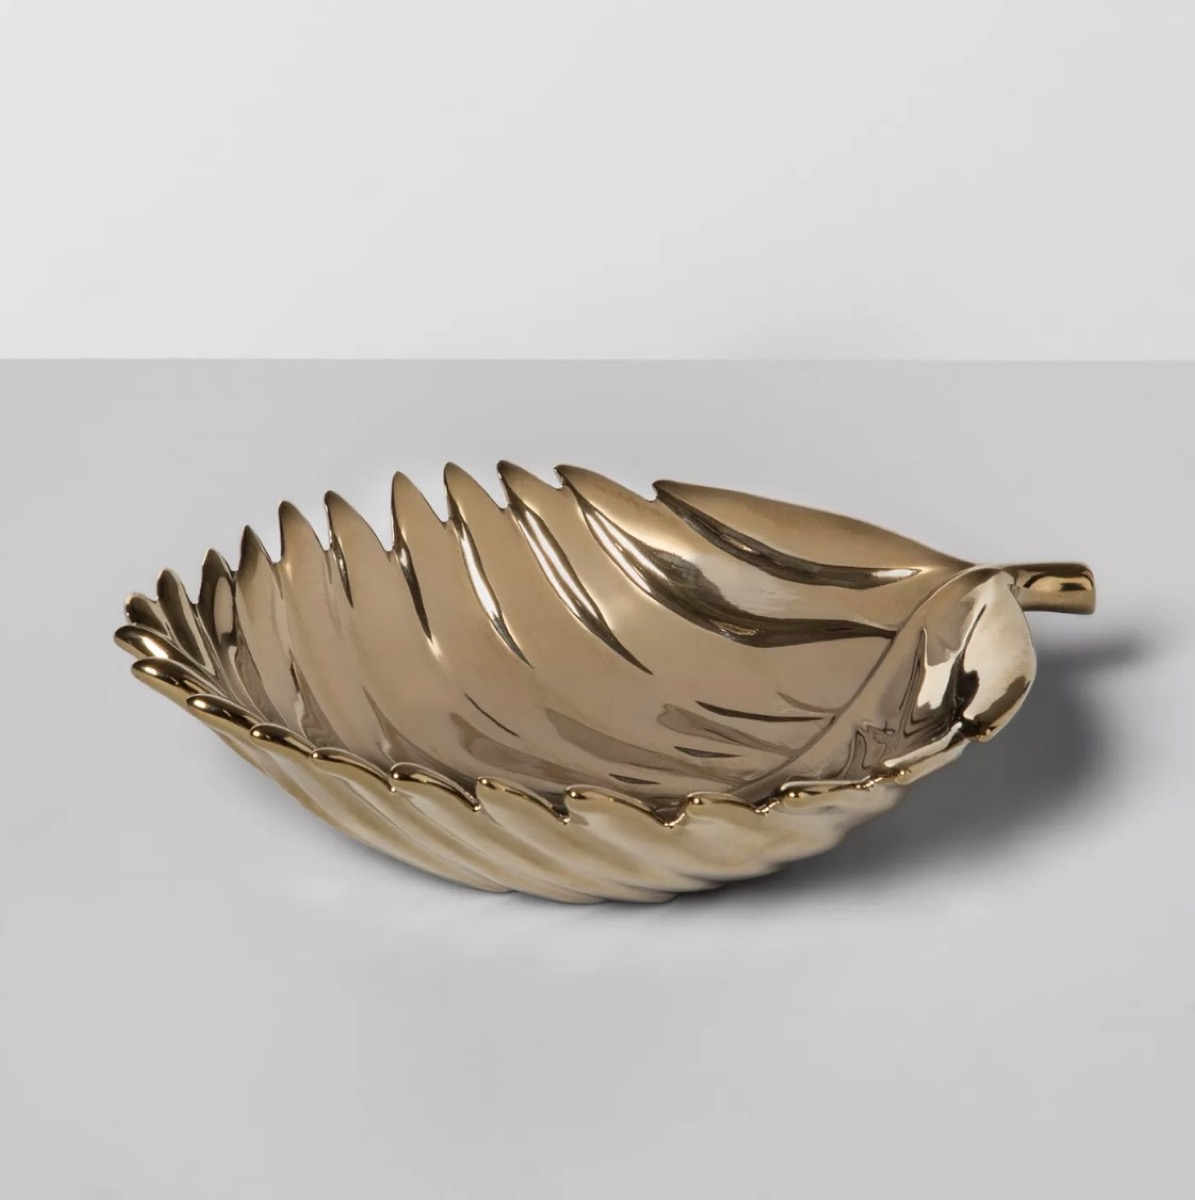 gold jewelry dish in the shape of a leaf, bathroom accessories